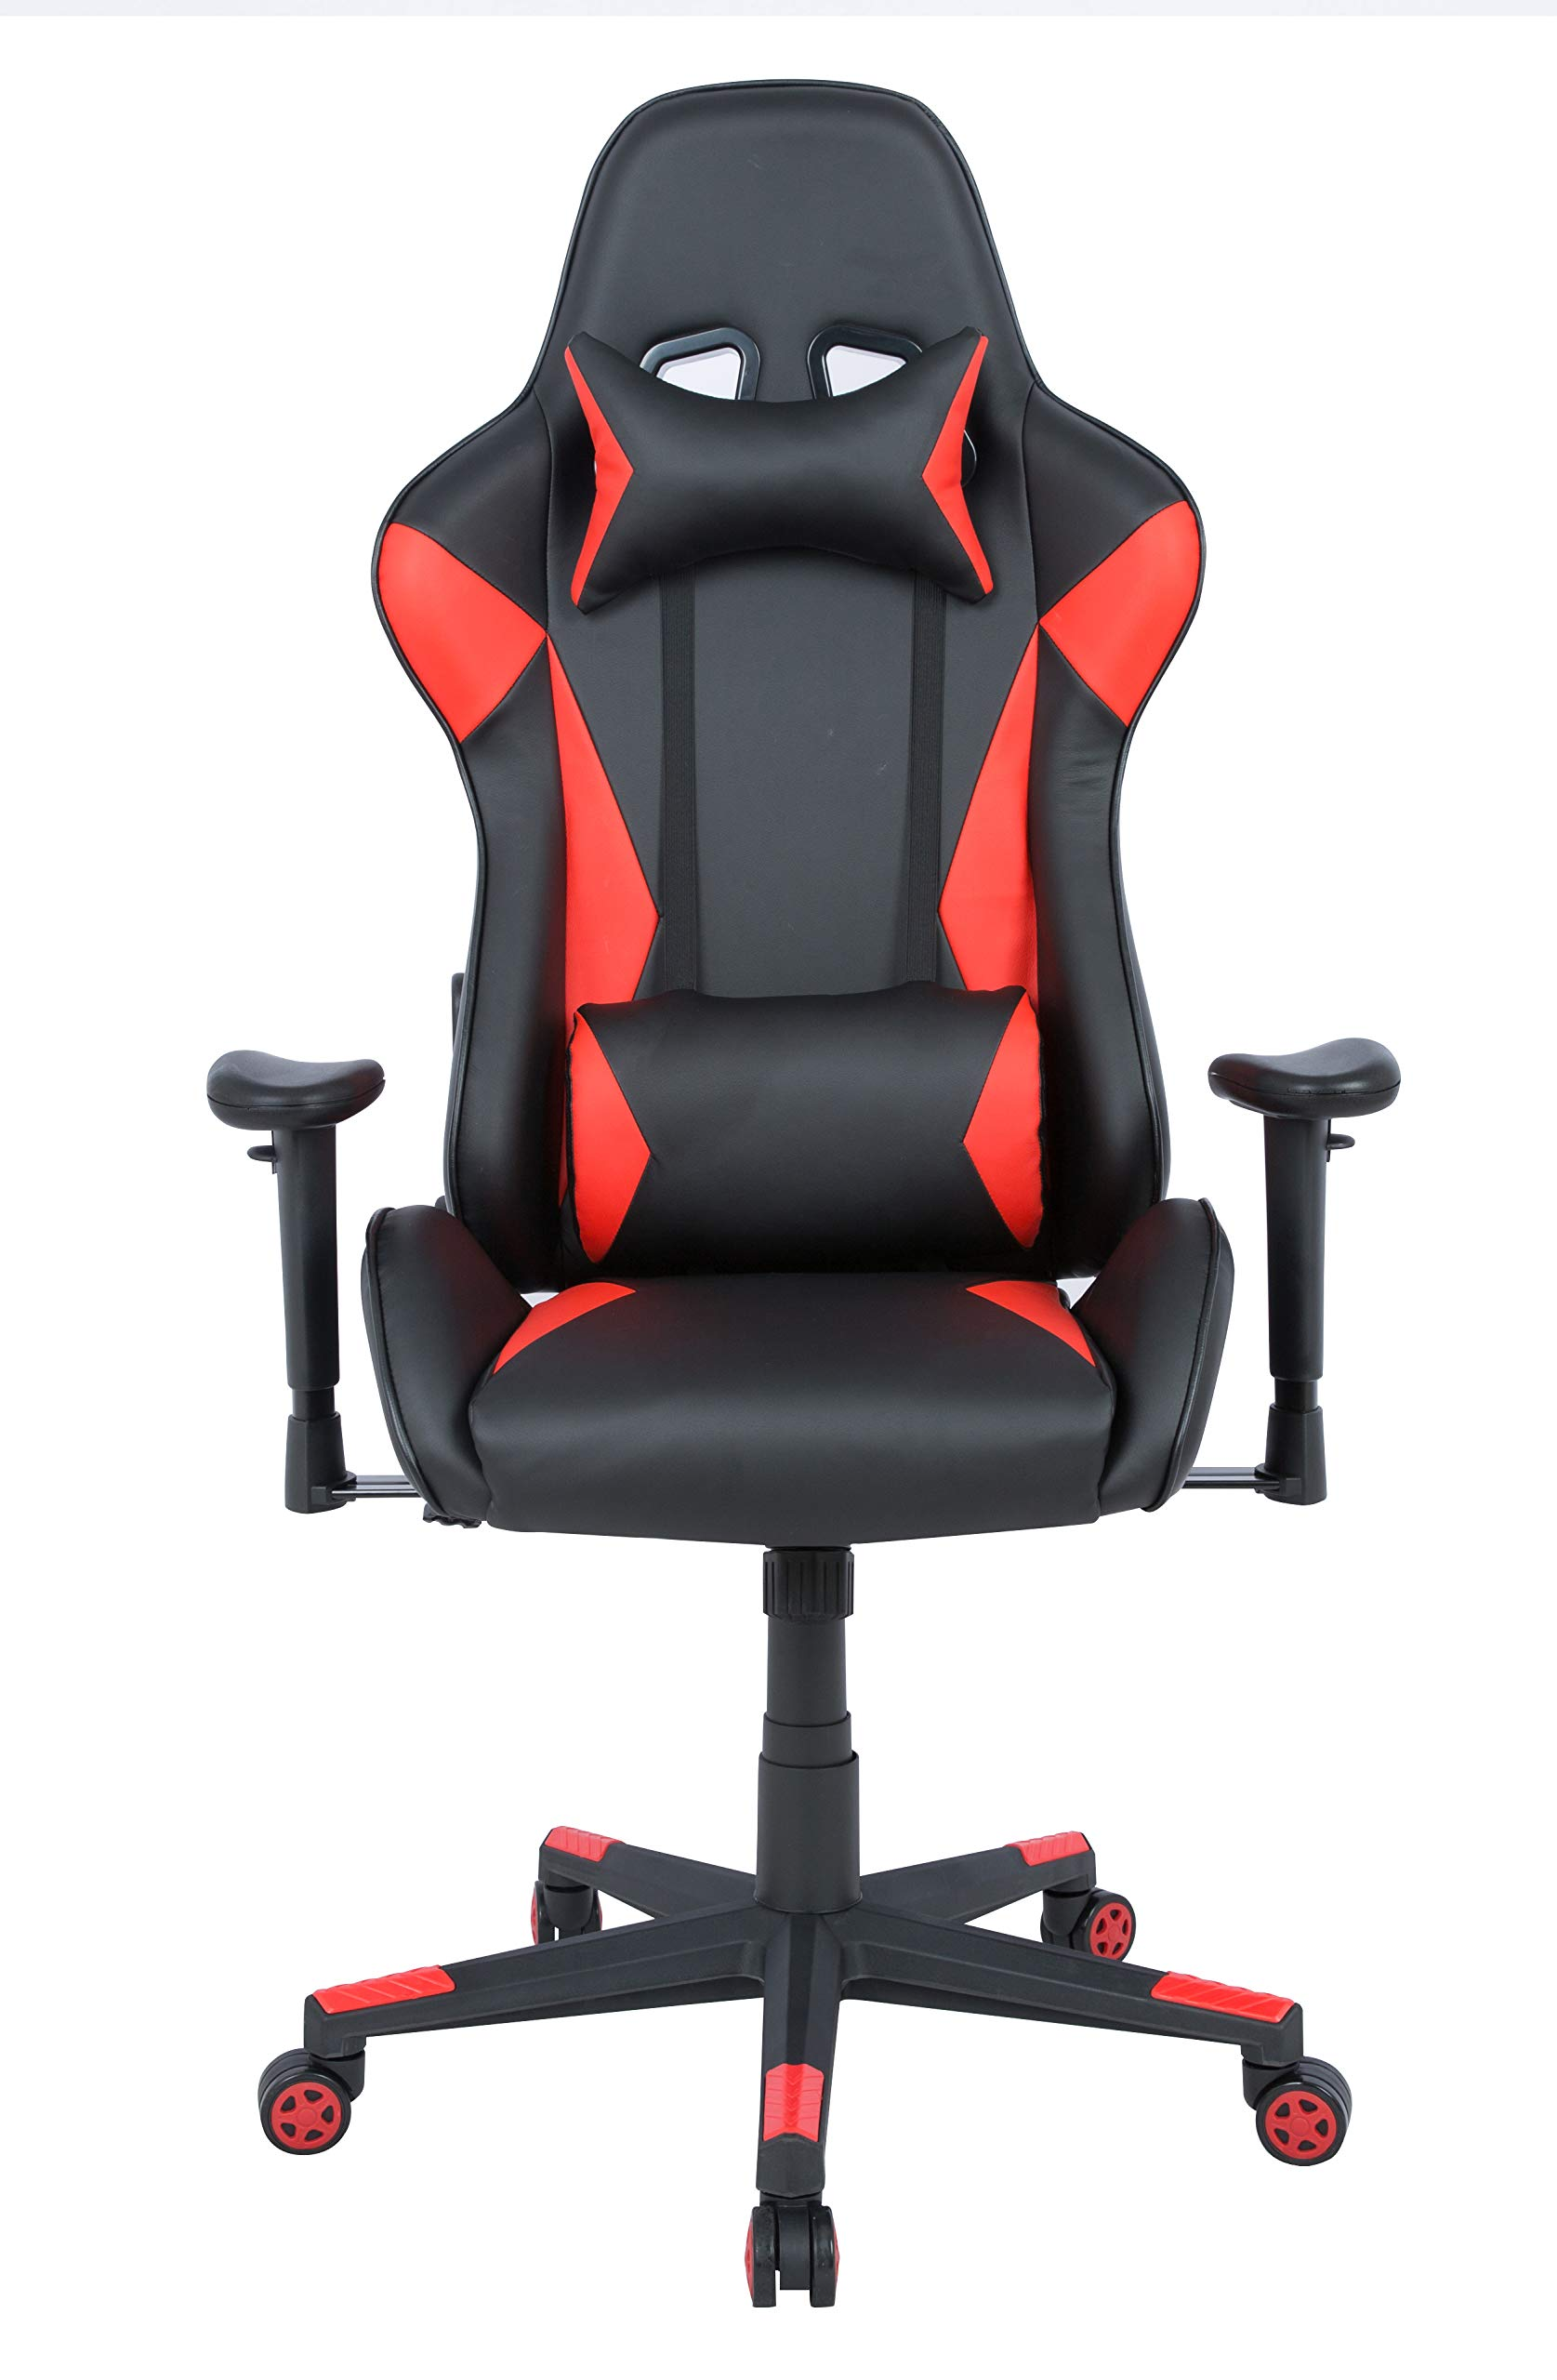 AmazonBasics BIFMA Certified Gaming/Racing Style Office Chair - with Removable Headrest and High Back Cushion - Red by AmazonBasics